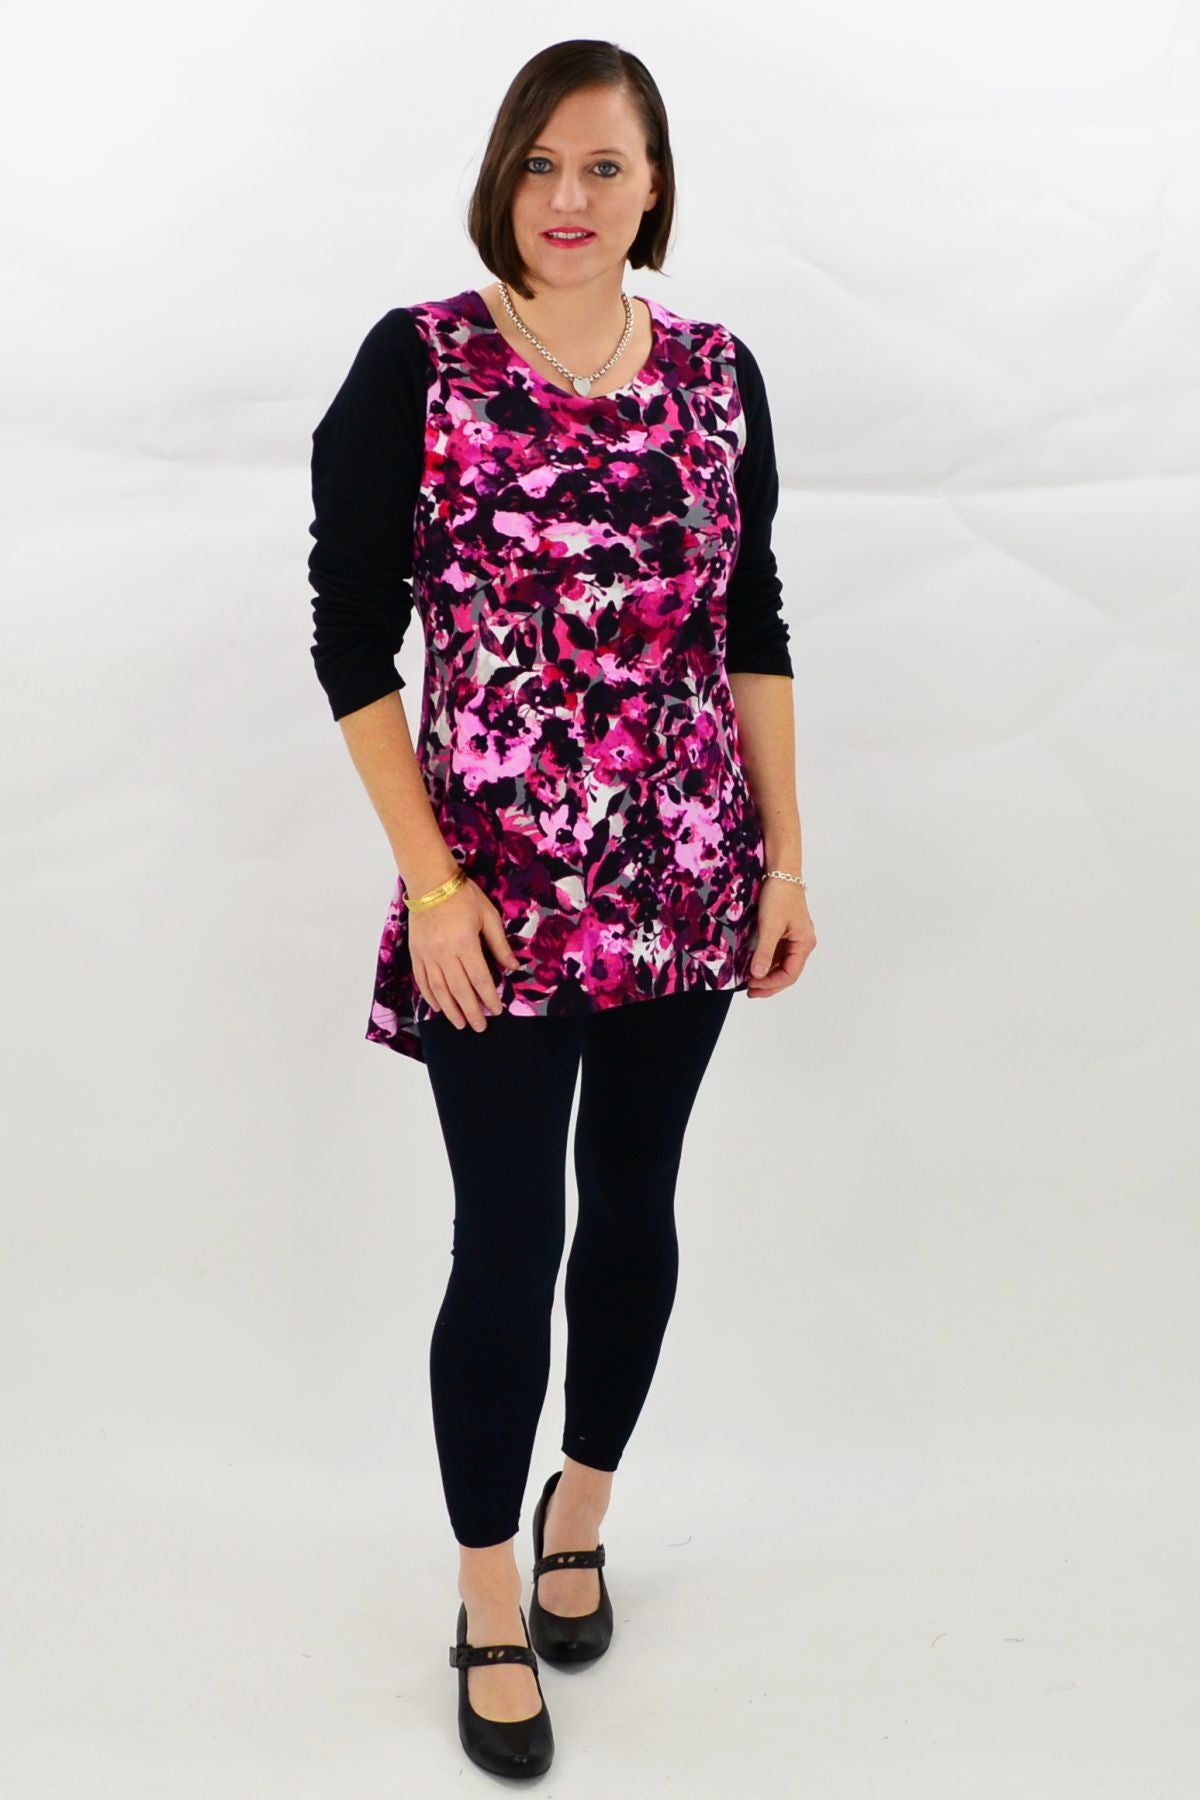 Pink Flower Tunic Top | I Love Tunics | Tunic Tops | Tunic | Tunic Dresses  | womens clothing online